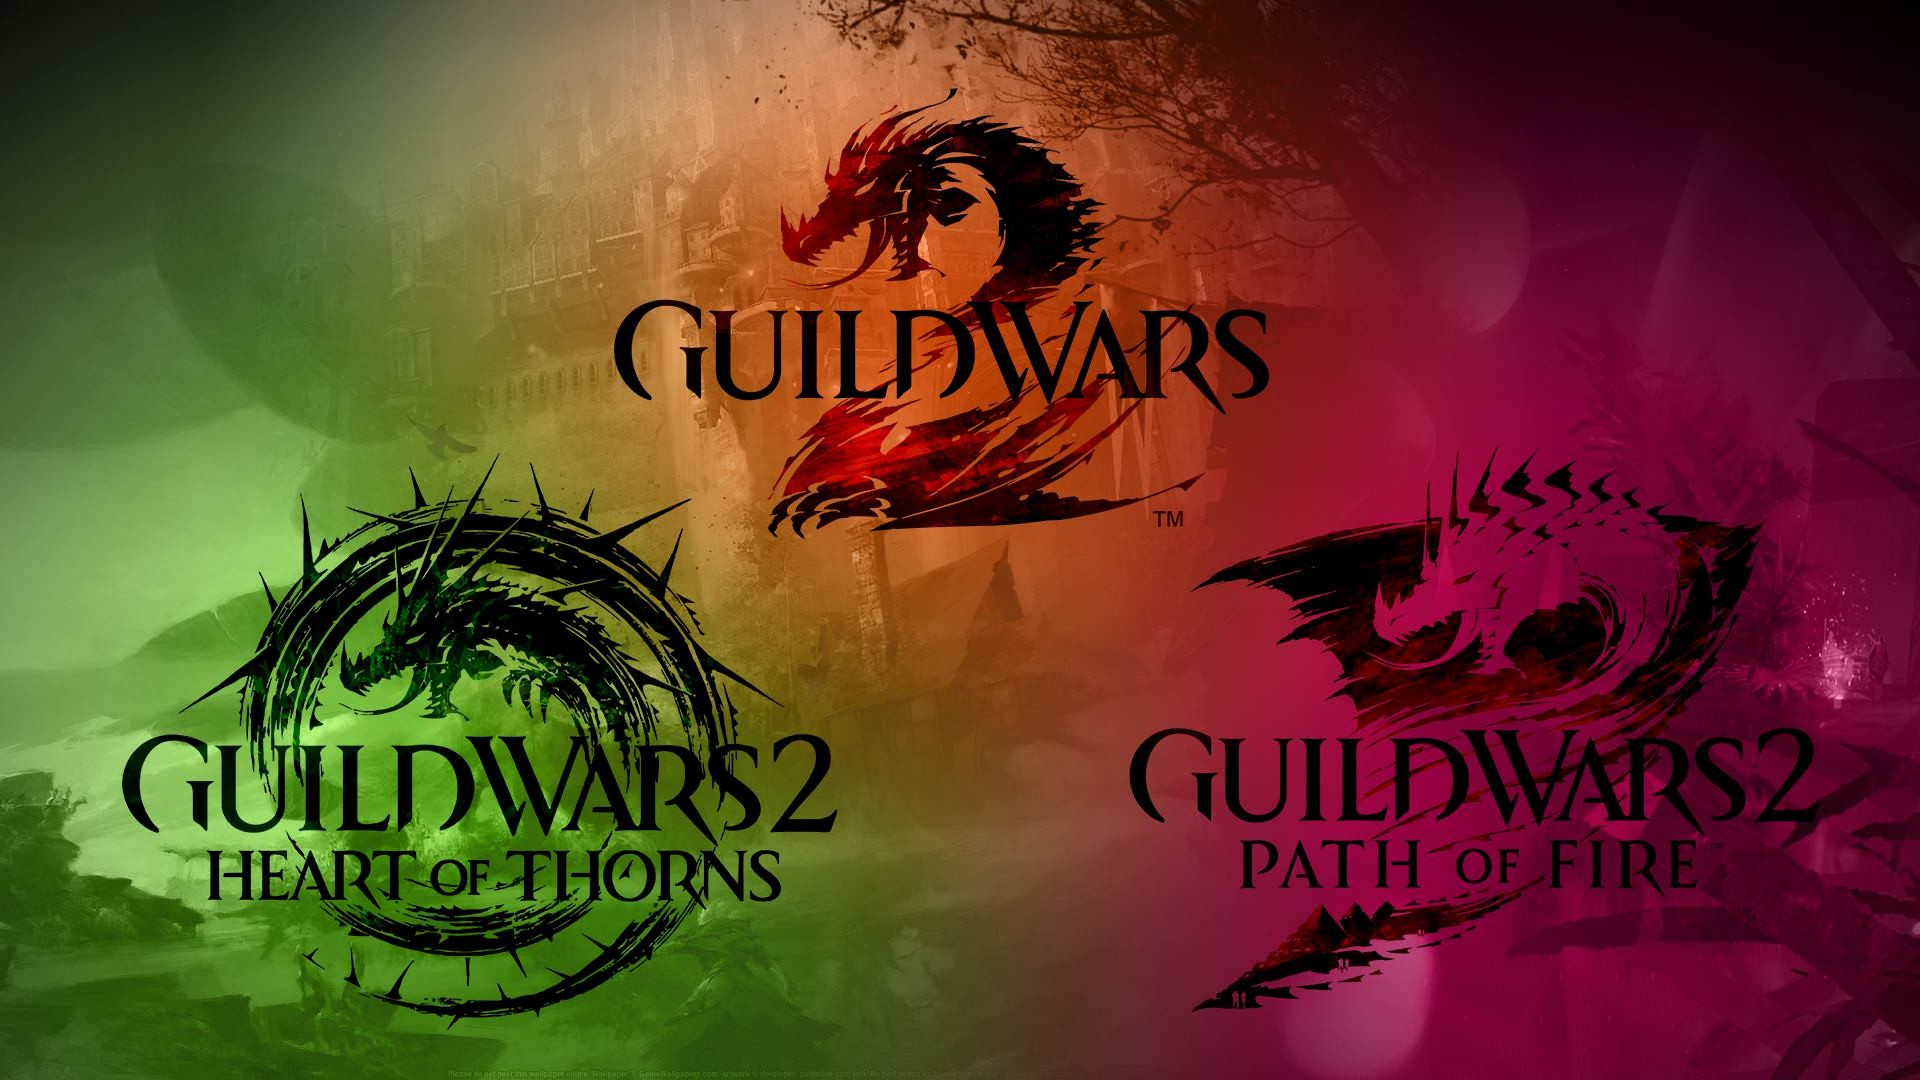 1920x1080 Guild Wars 2 / HoT / PoF wallpaper I made